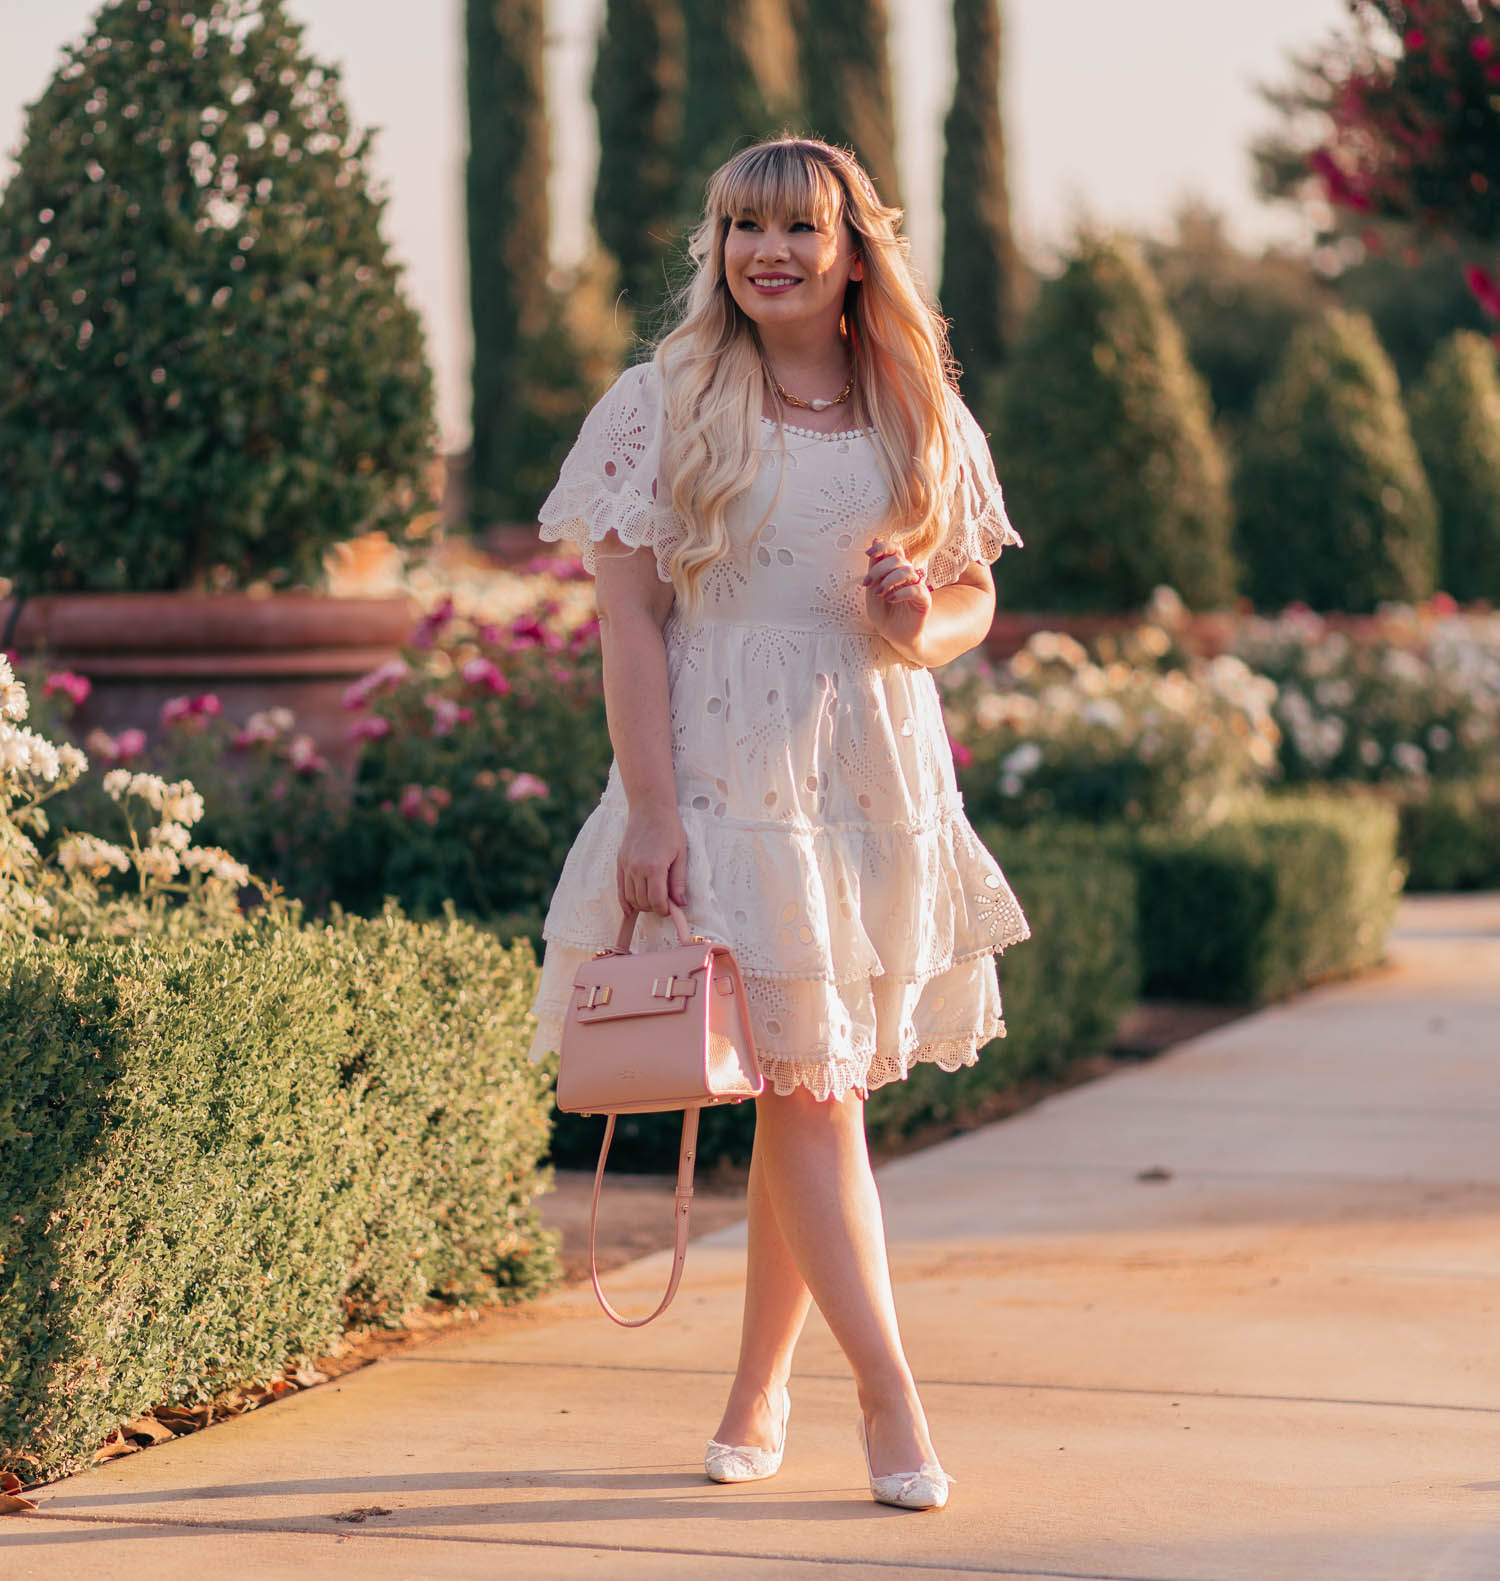 Feminine Fashion Blogger Elizabeth Hugen of Lizzie in Lace shares the perfect white summer dress for the girly girl